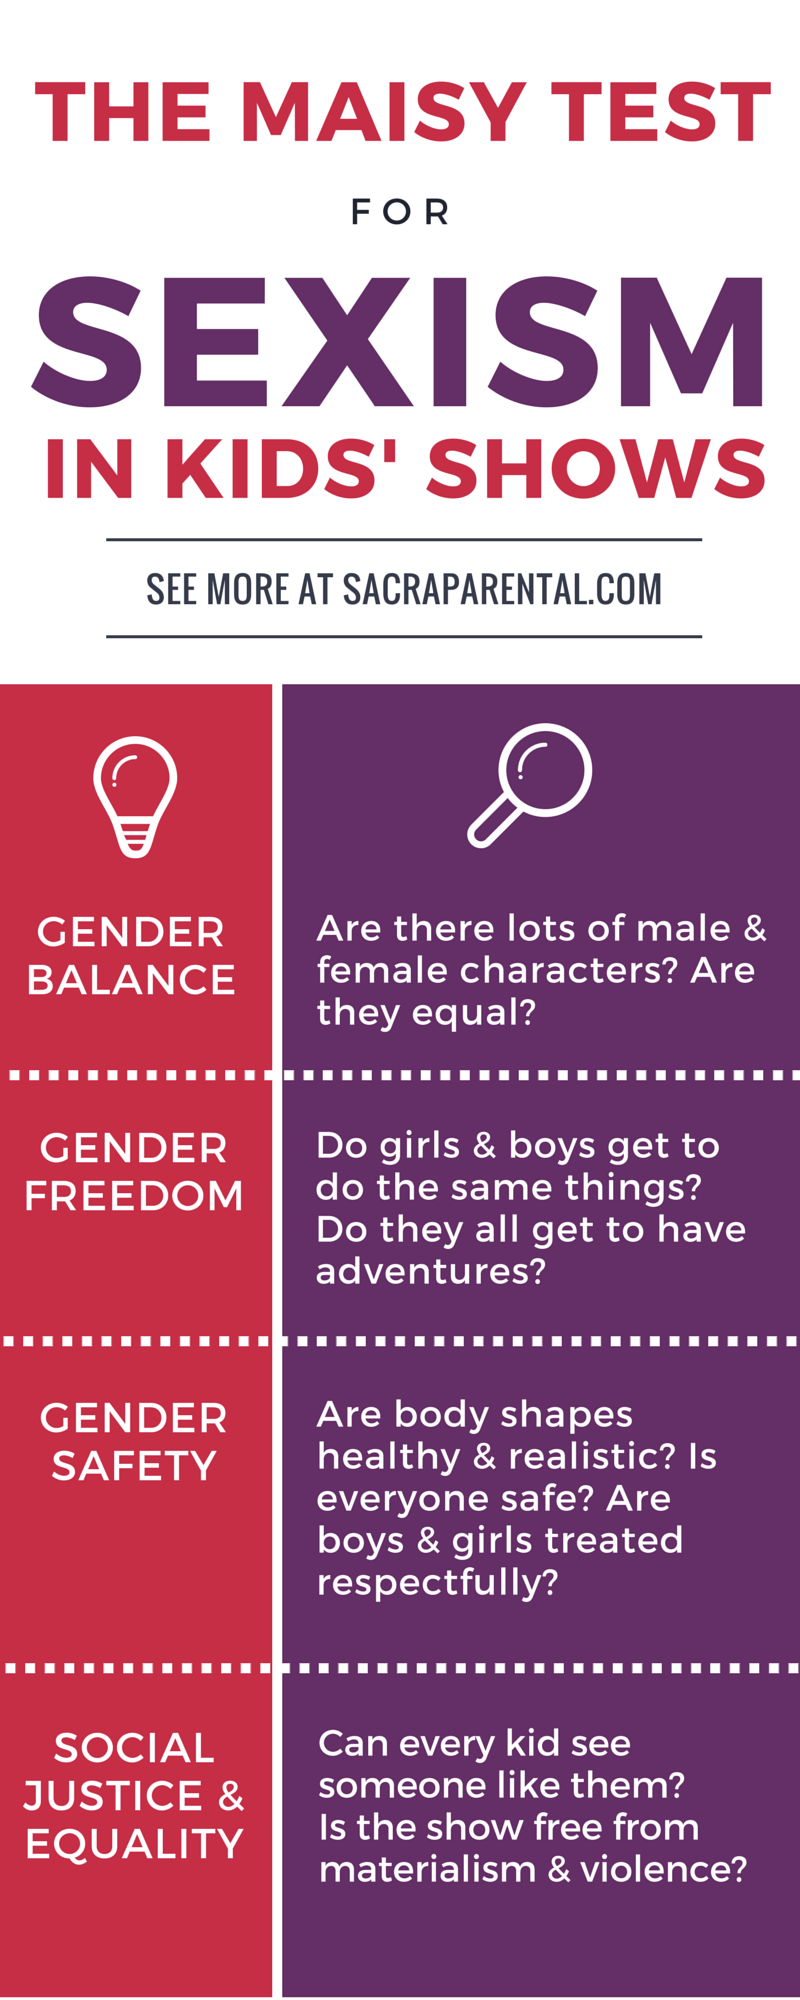 The Maisy Test for Sexism in Kids' TV Shows and Movies: What